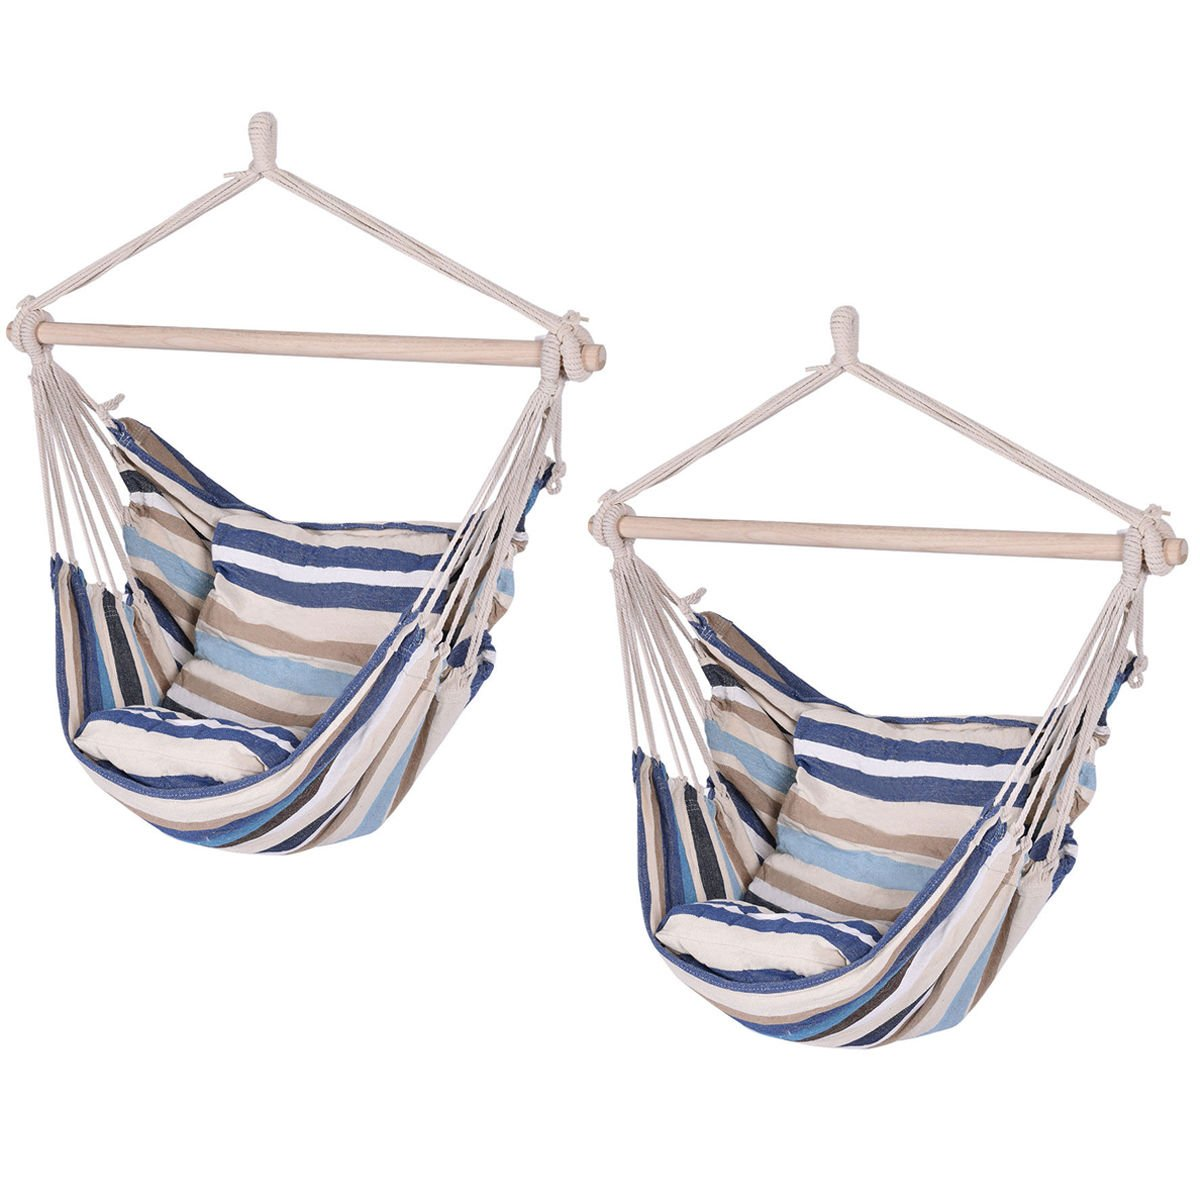 Deluxe Hammock Rope Chair Porch Yard Tree Hanging Air Swing Outdoor Set of 2